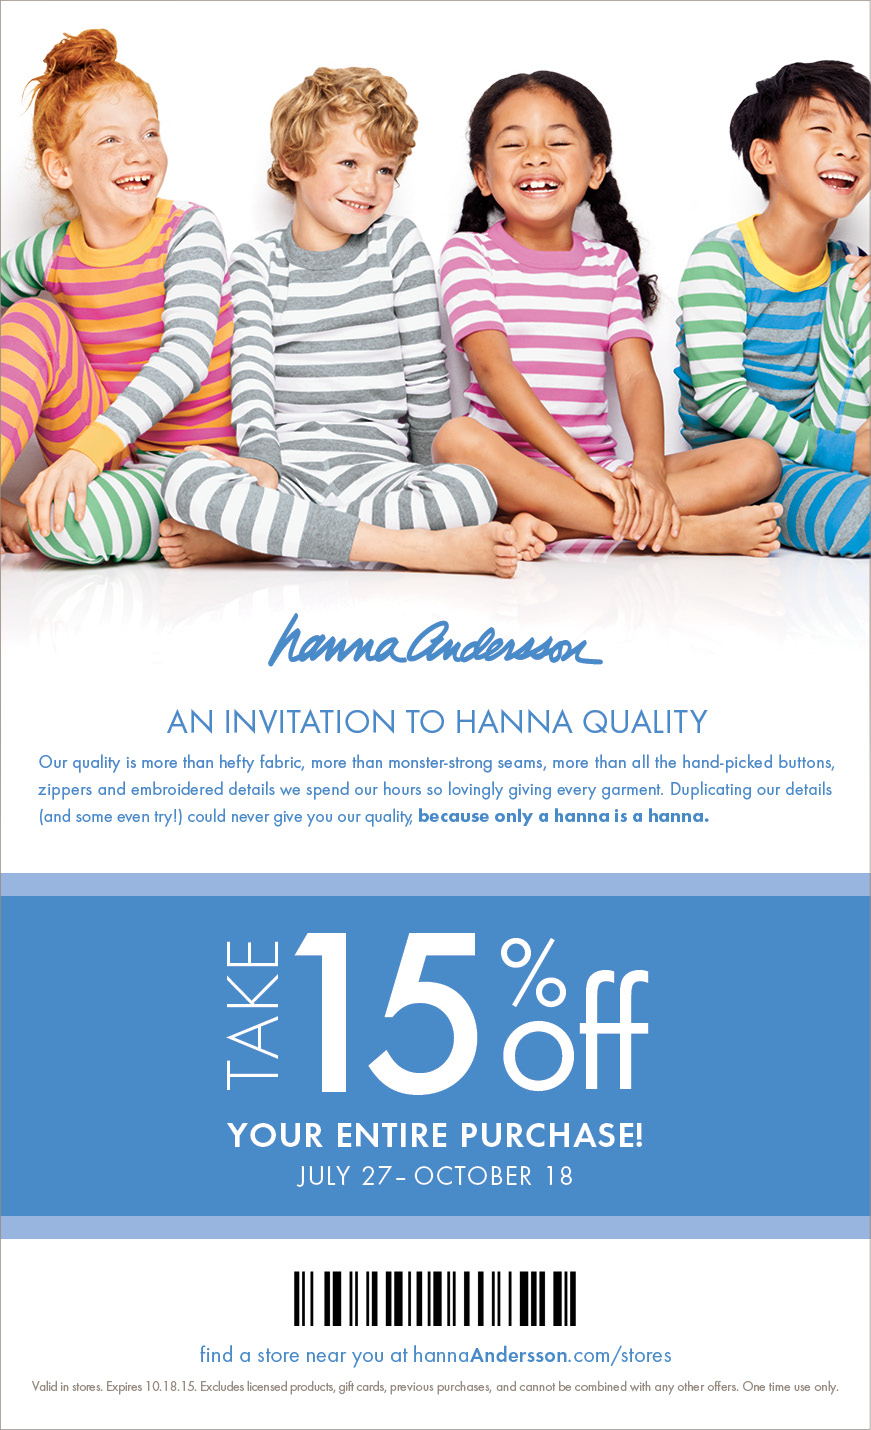 Hanna andersson coupon code free shipping